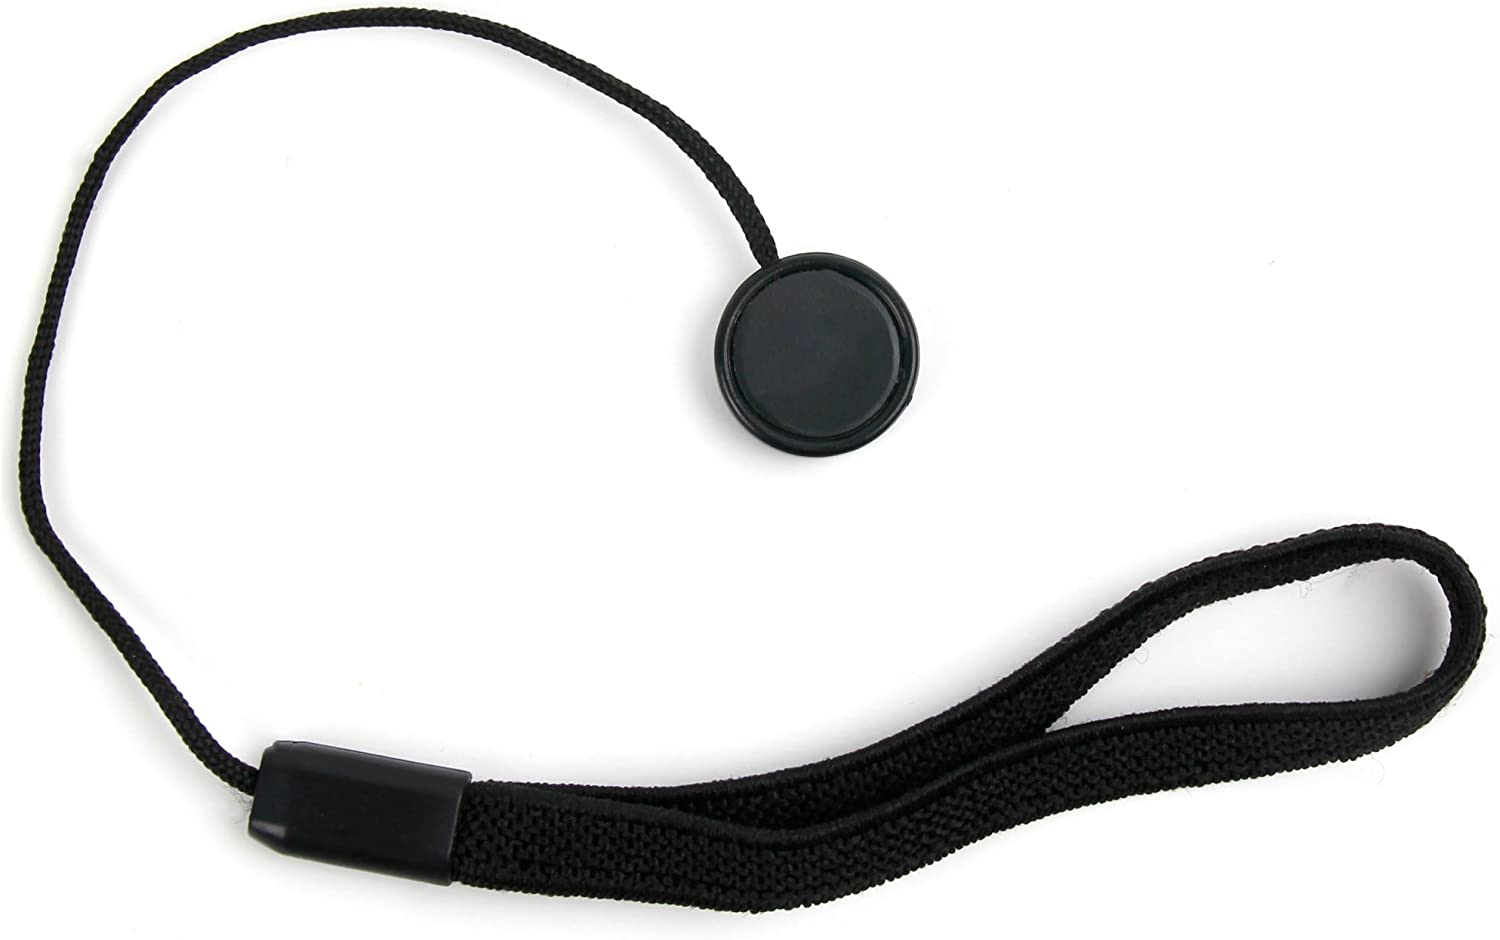 DURAGADGET Adhesive Camera Lens Cap Keeper Holder with Elastic Band for The Panasonic DMC-FZ330